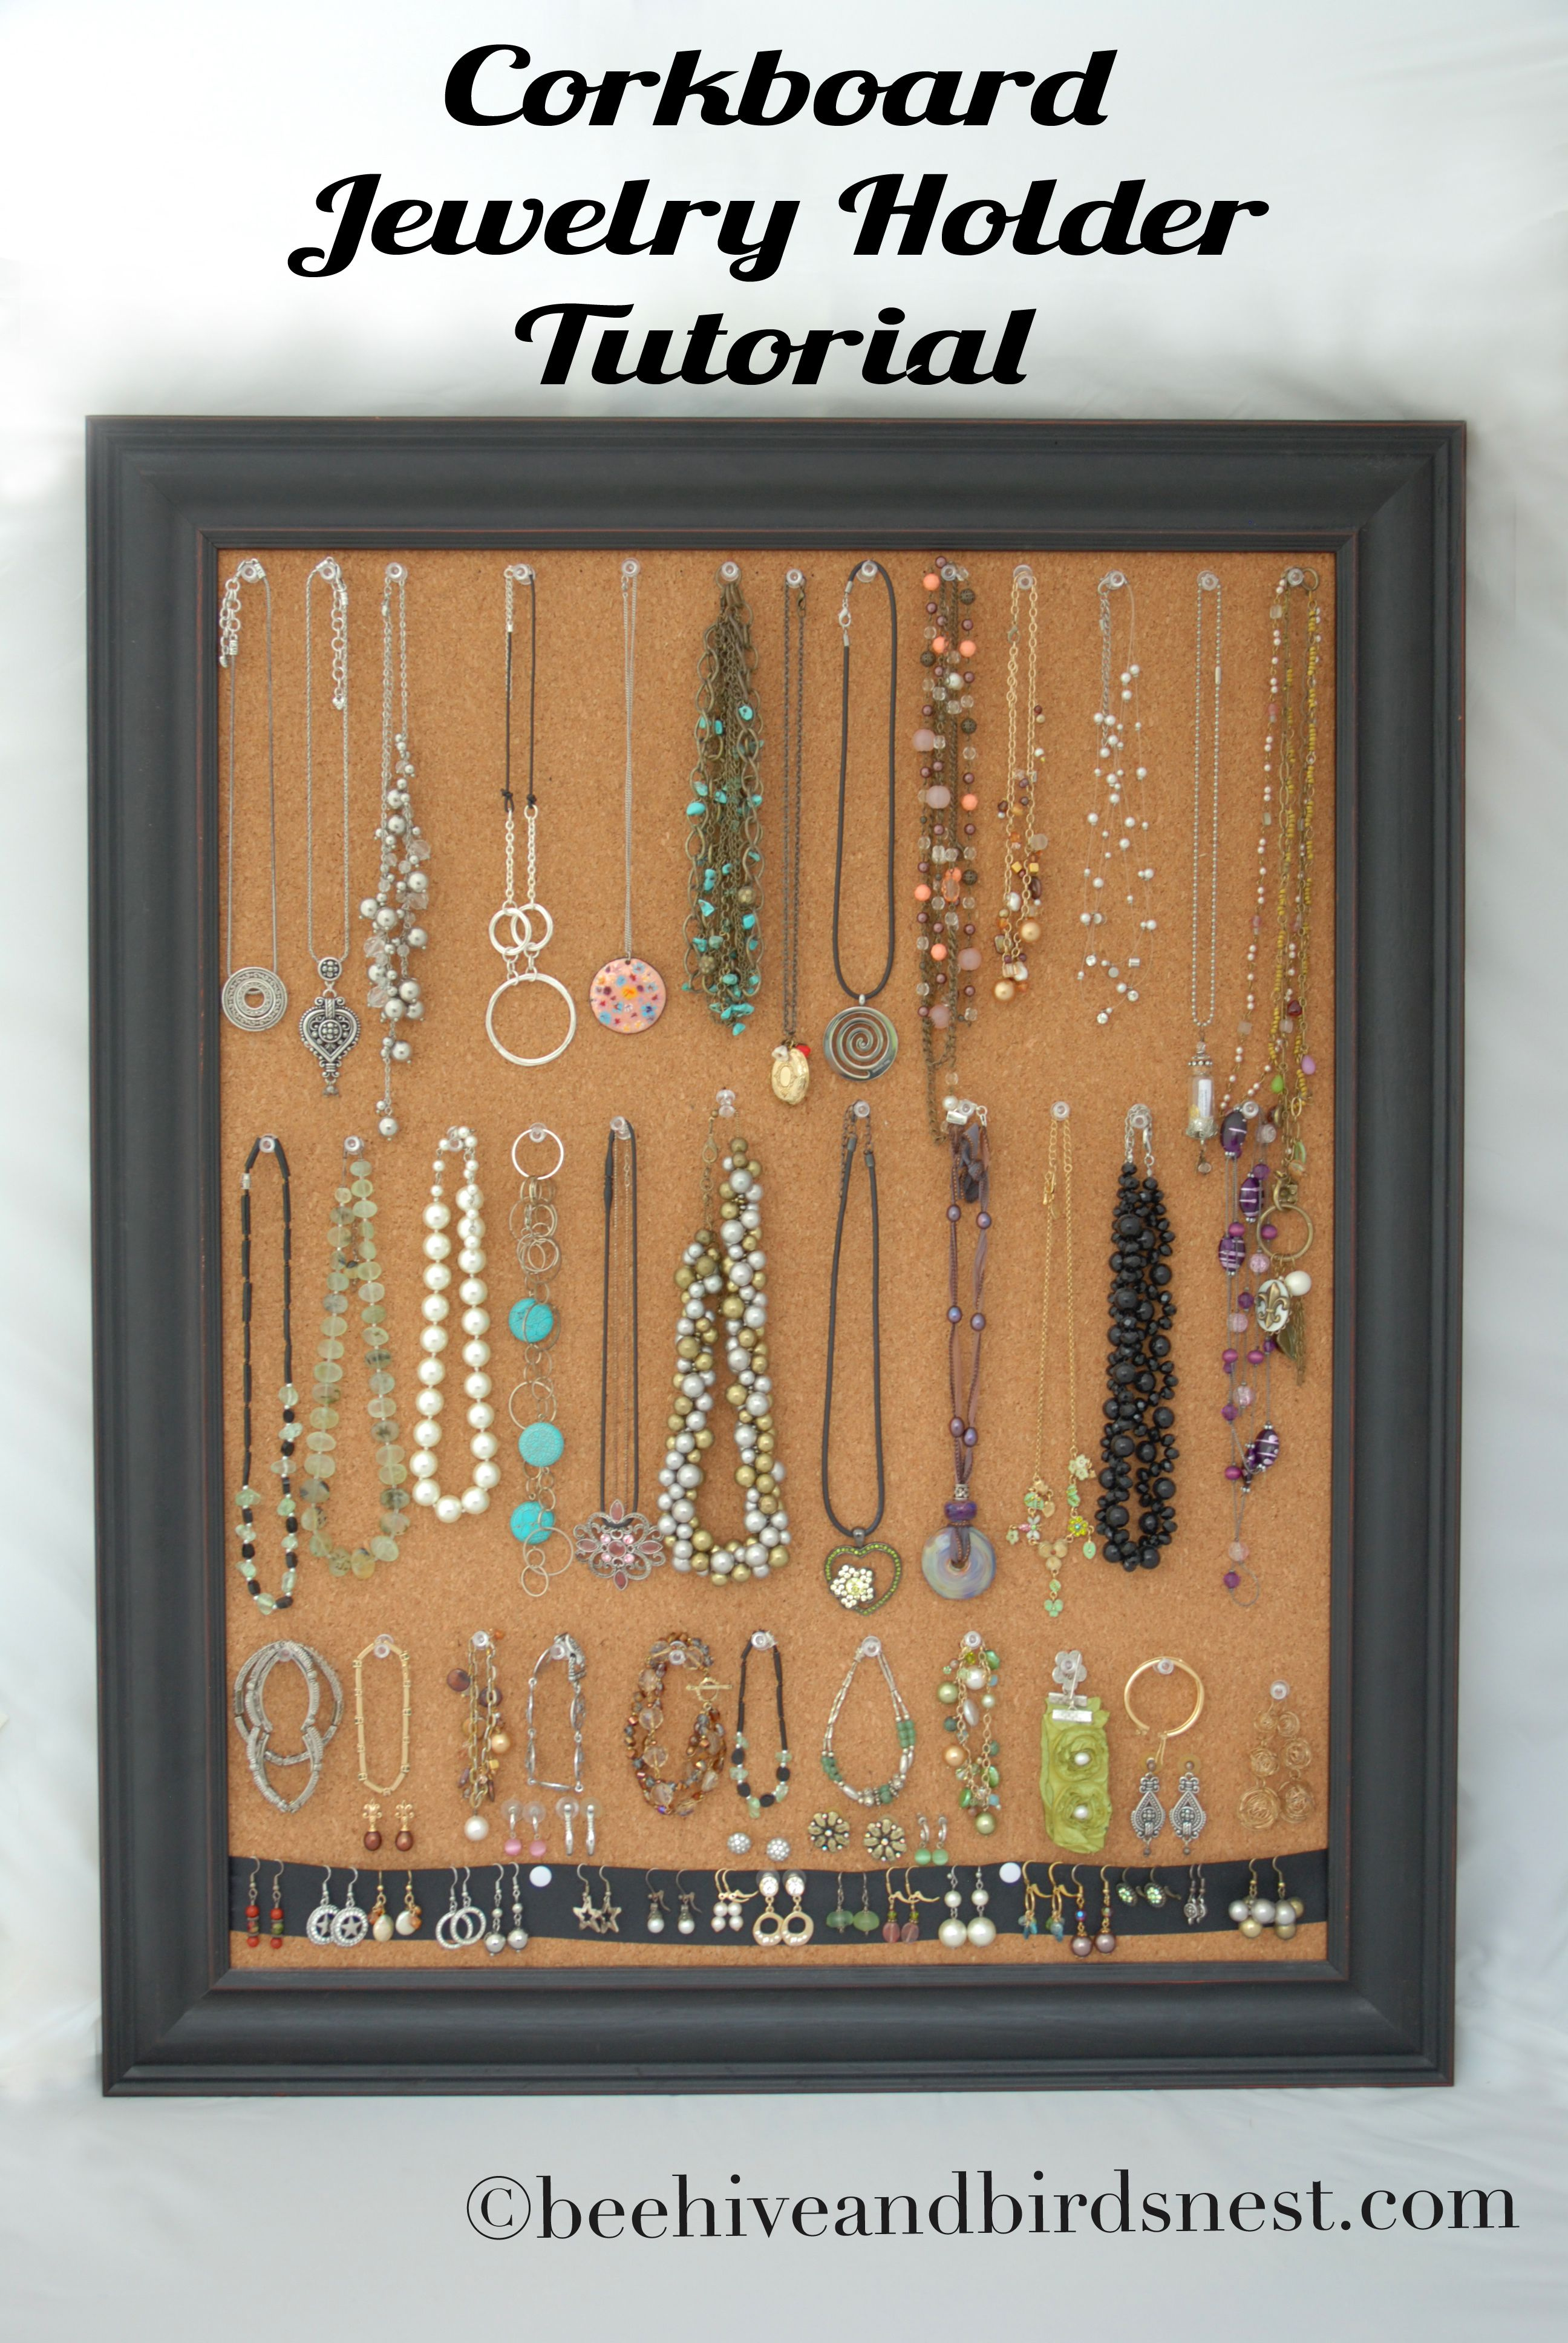 Cork Board Jewelry Holder Another Cute Idea For The Girls Christmas Gifts